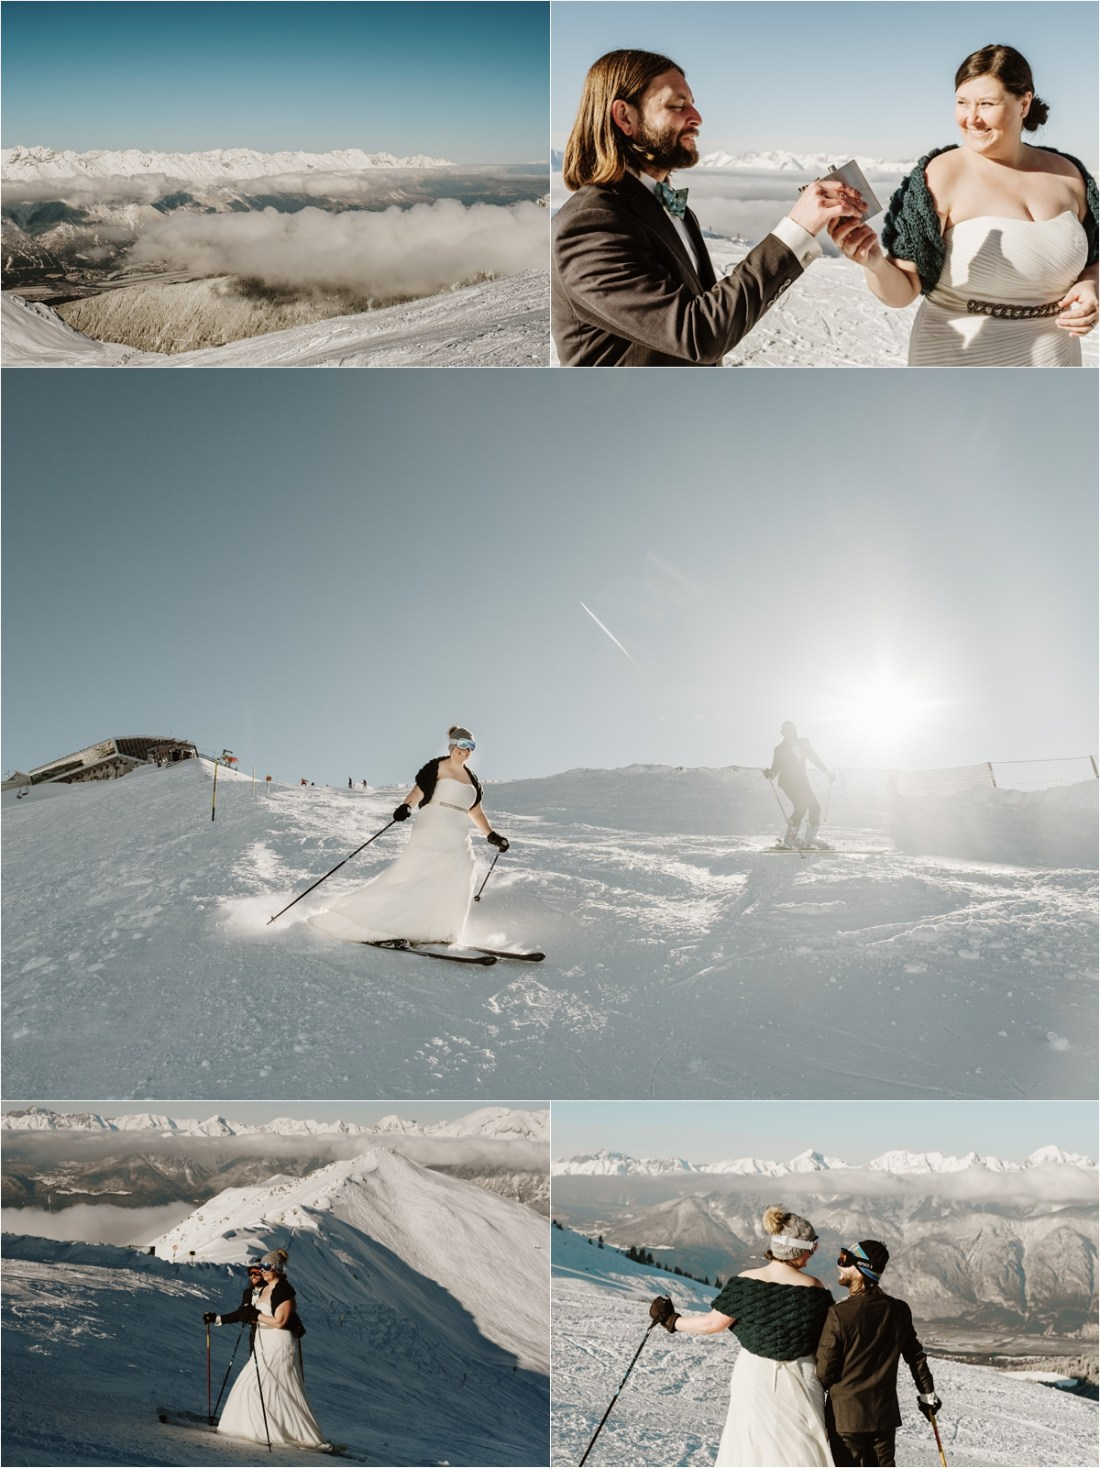 Abby & Jeff's trash the dress skiing wedding shoot by Wild Connections Photography